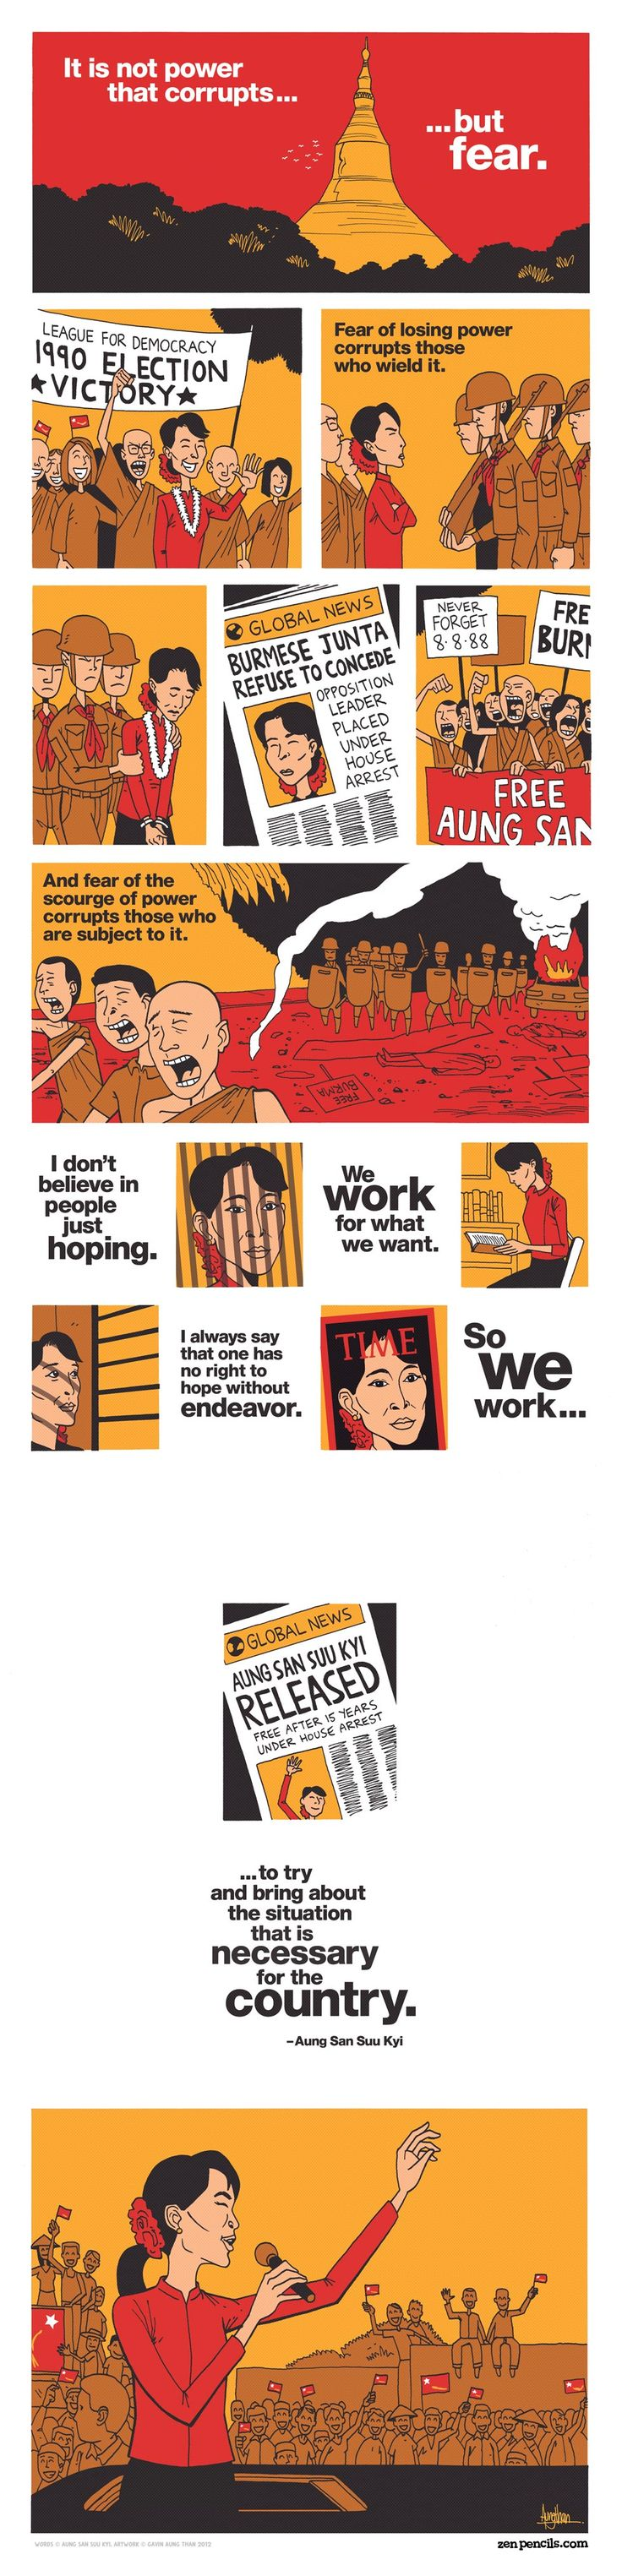 Zen Pencils.  AUNG SAN SUU KYI: Freedom from fear.  Aung San Suu Kyi (Pronounced: Awn Sahn Sue Chee) (1945-) is an international icon for peace and the embodiment of the Burmese (now Myanmar) people's fight for democracy after 50 years of oppressive military rule. She is the daughter of General Aung San, the leader of the fight for independence from the British, who was assassinated in 1947 (the same year he successfully led the independence movement).